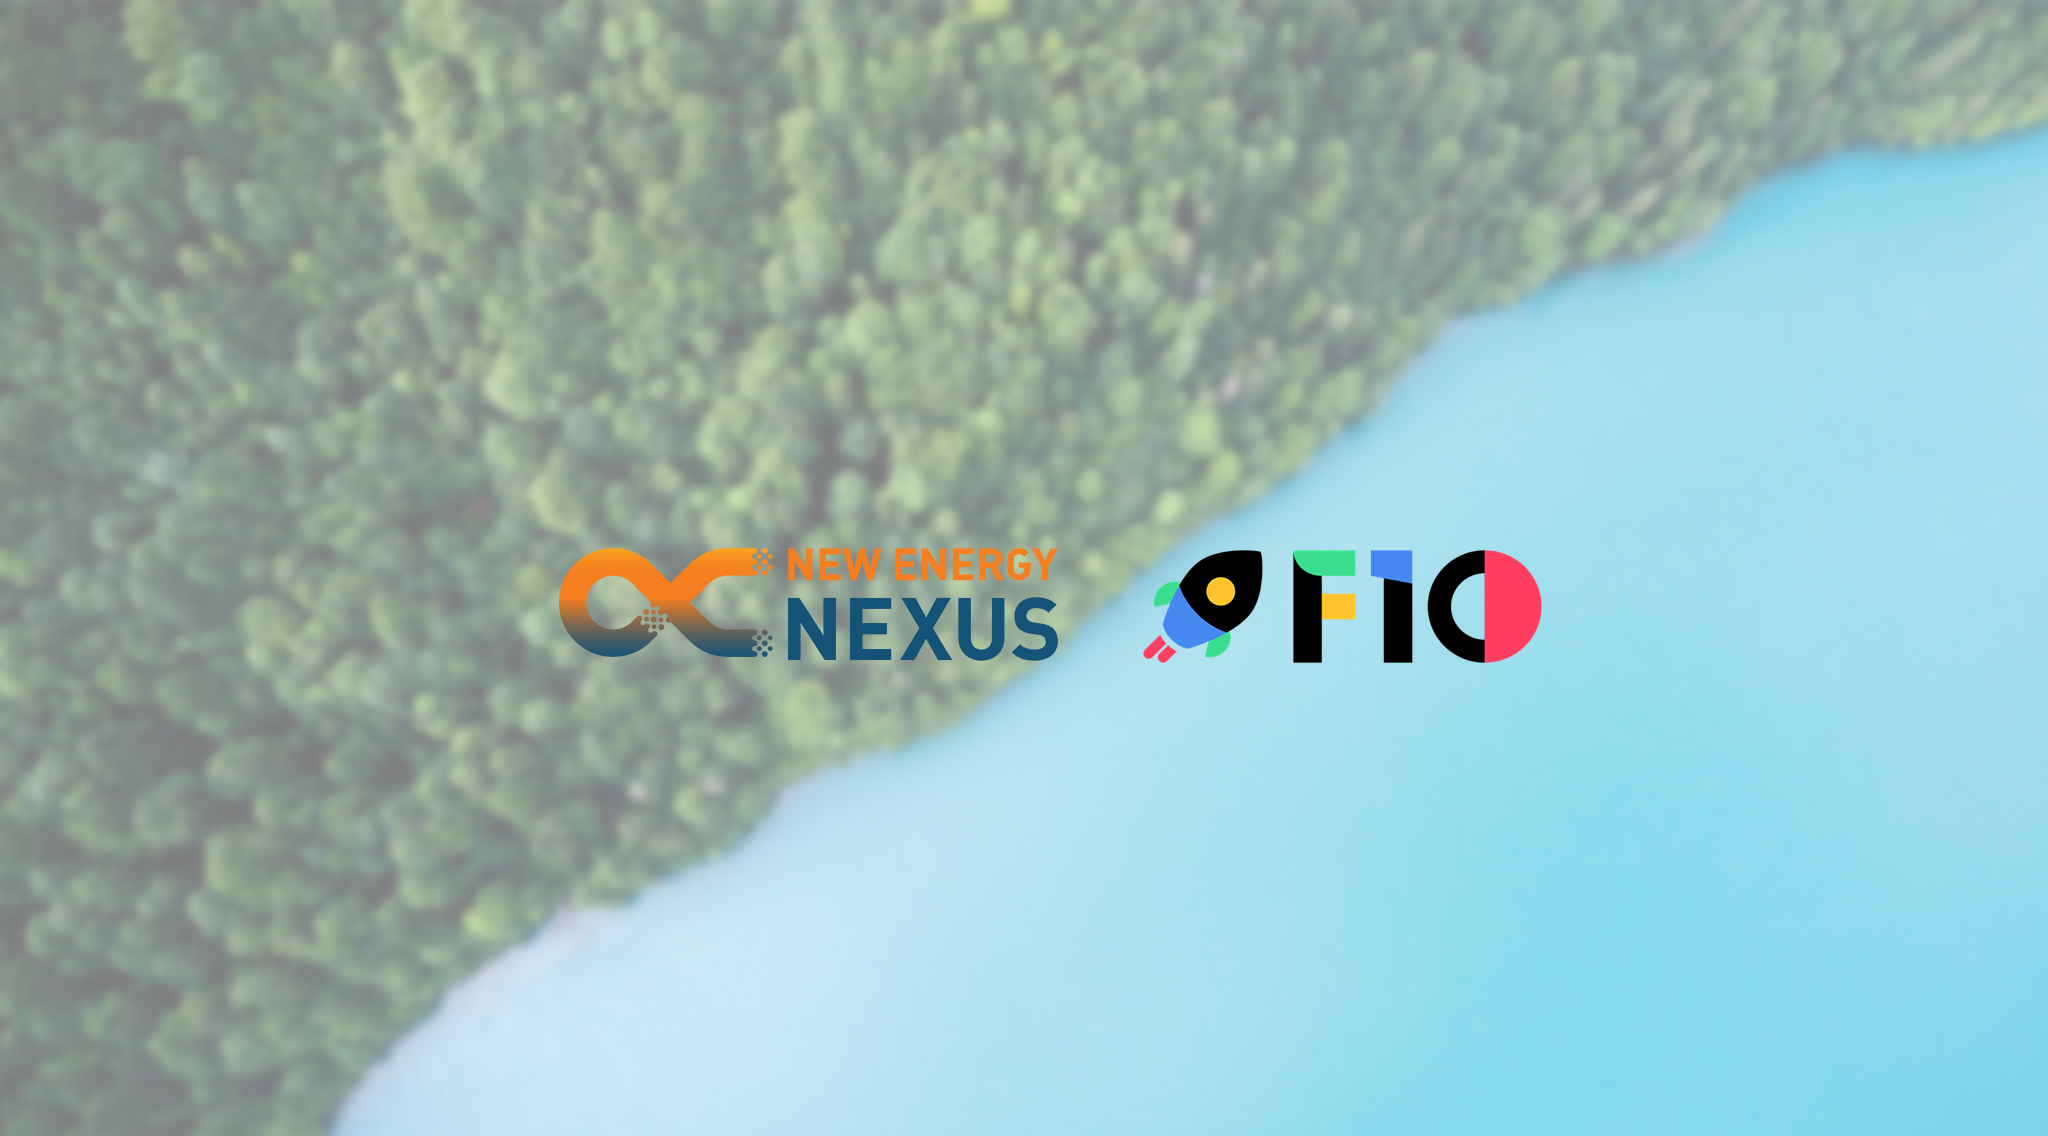 F10 Partners New Energy Nexus for Green and Climate Fintech Programme | Fintech Schweiz Digital Finance News – FintechNewsCH